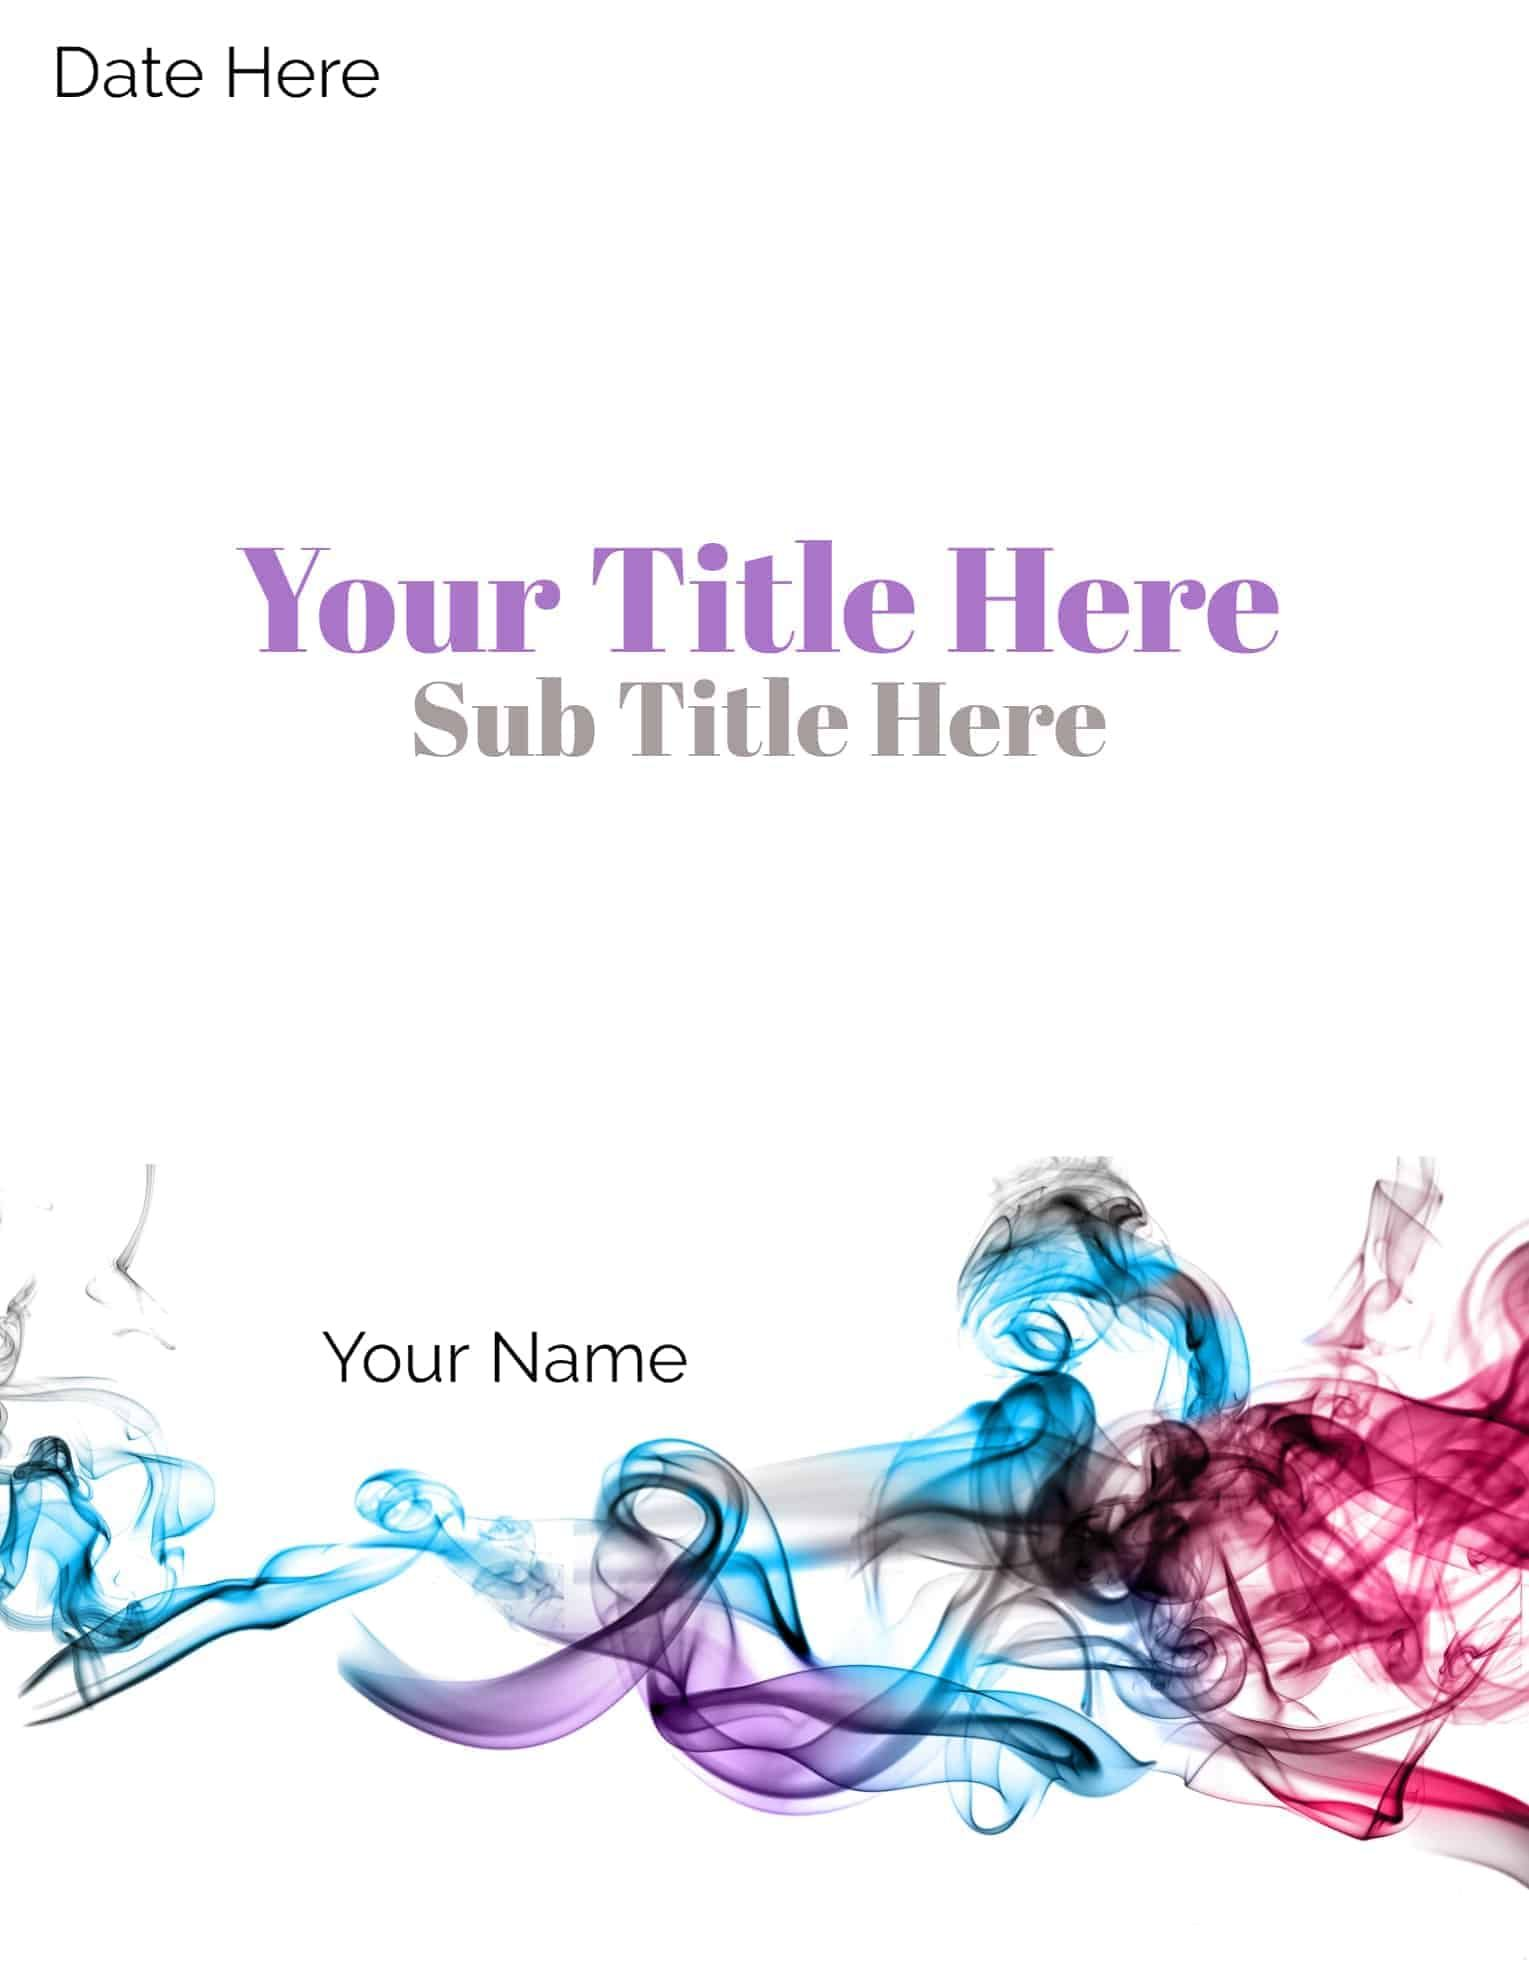 Free printable cover pages that you can edit online. Add